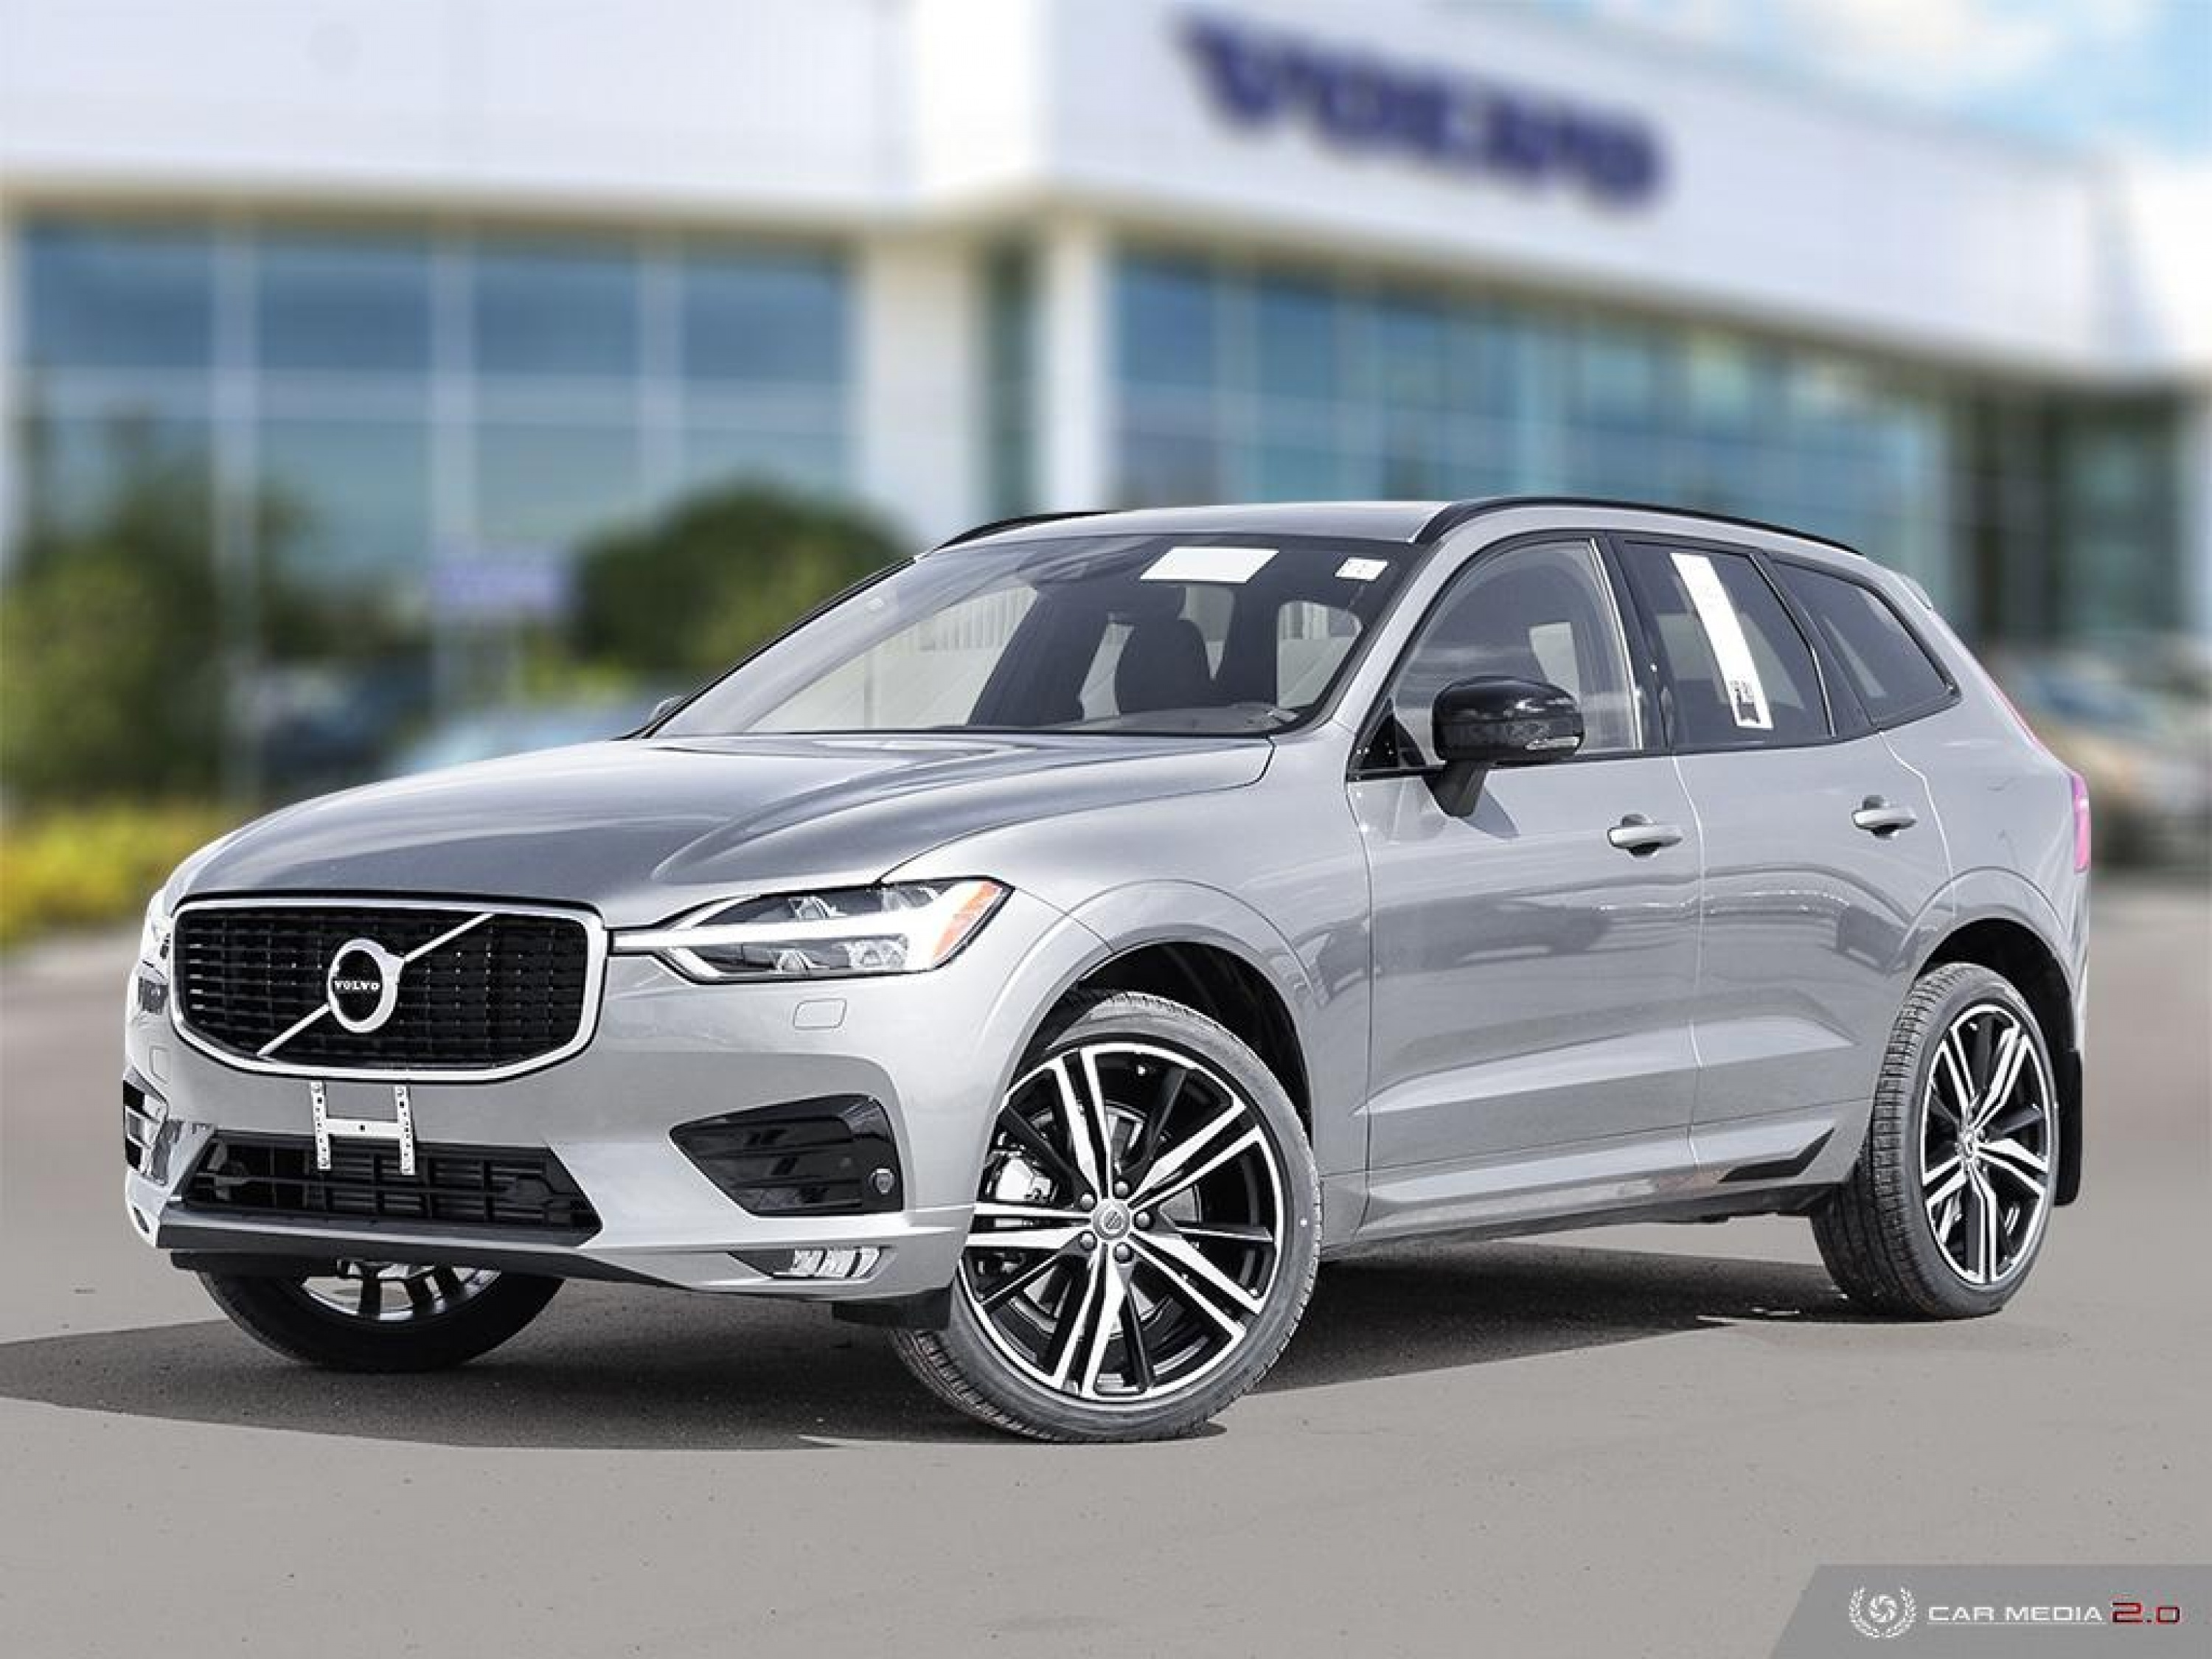 New 2020 Volvo XC60 R-Design | Modern Swedish Luxury